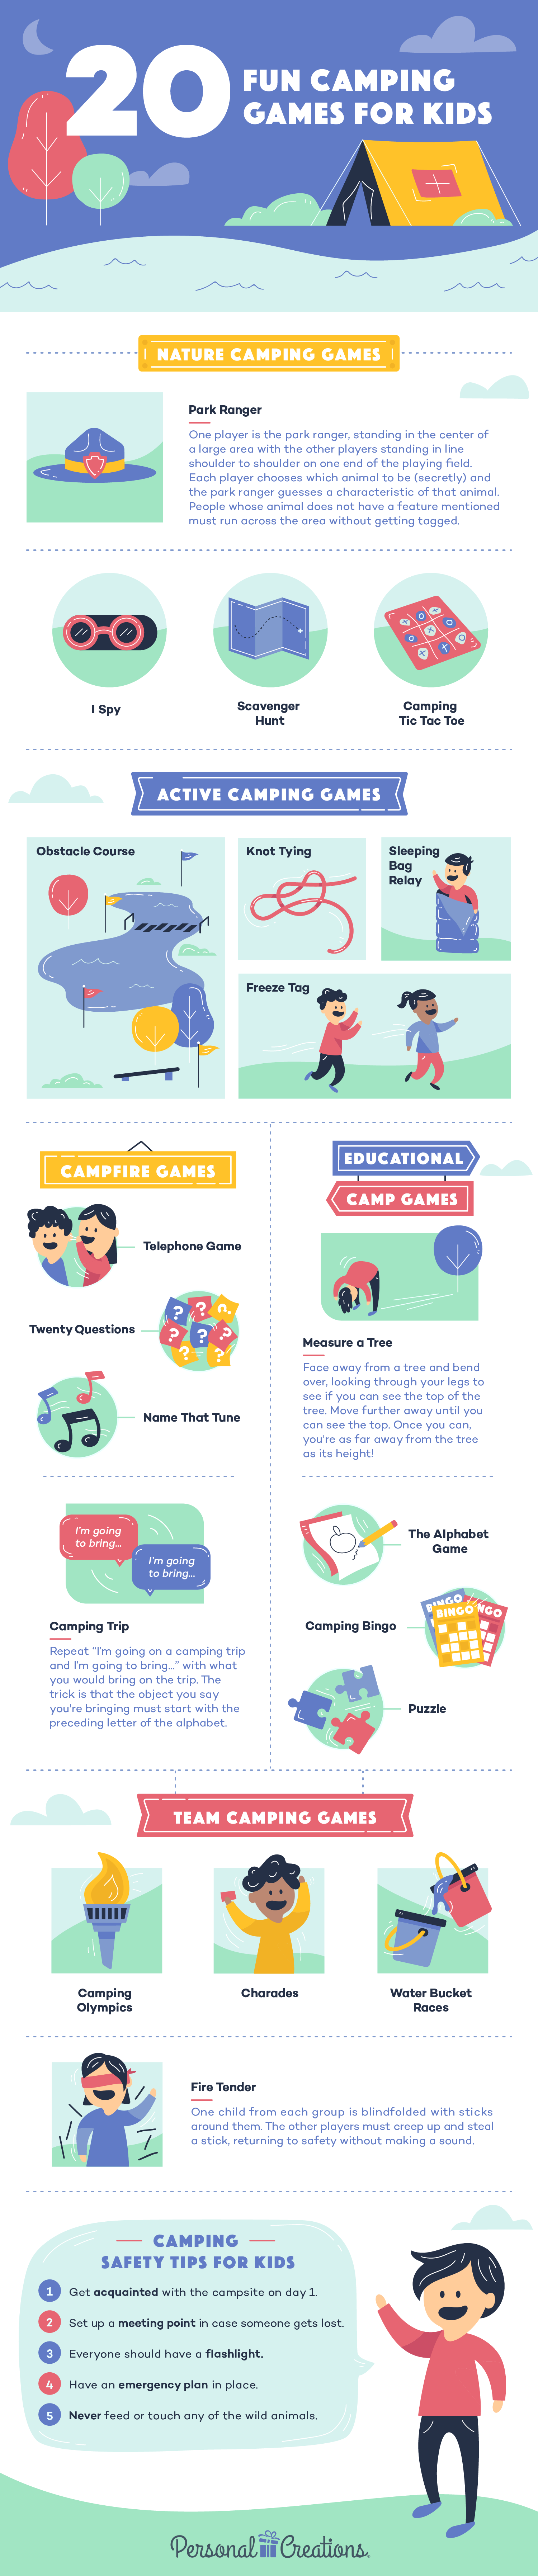 20 Best Camping Games For Kids